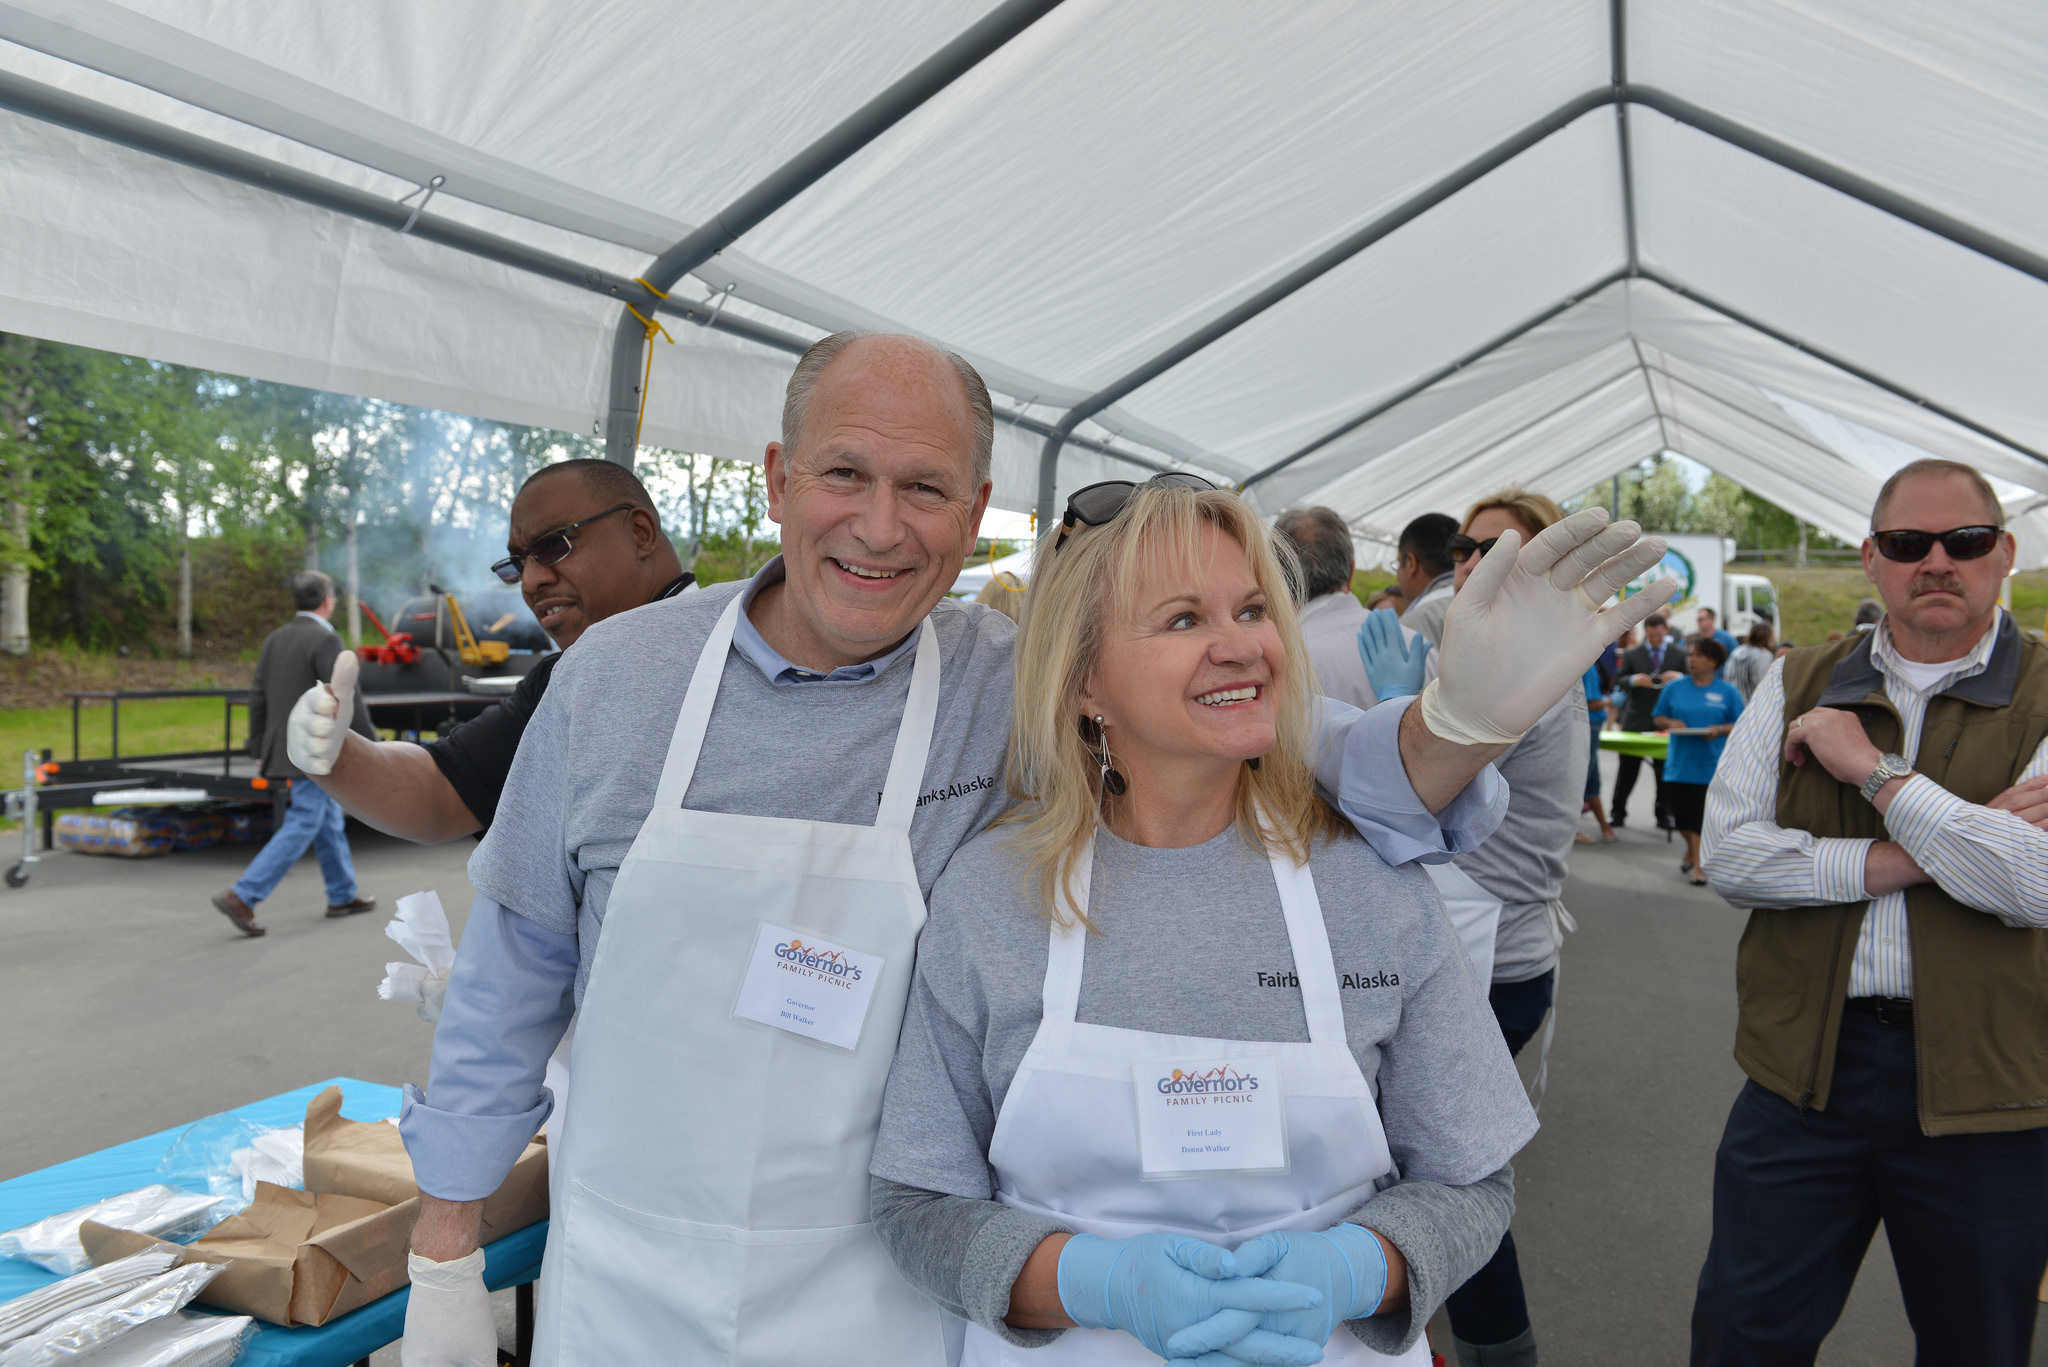 Gov. Bill Walker and first lady Donna Walker at the governor's picnic in Fairbanks, June 7. (Creative Commons photo by Alaska Governor Bill Walker)